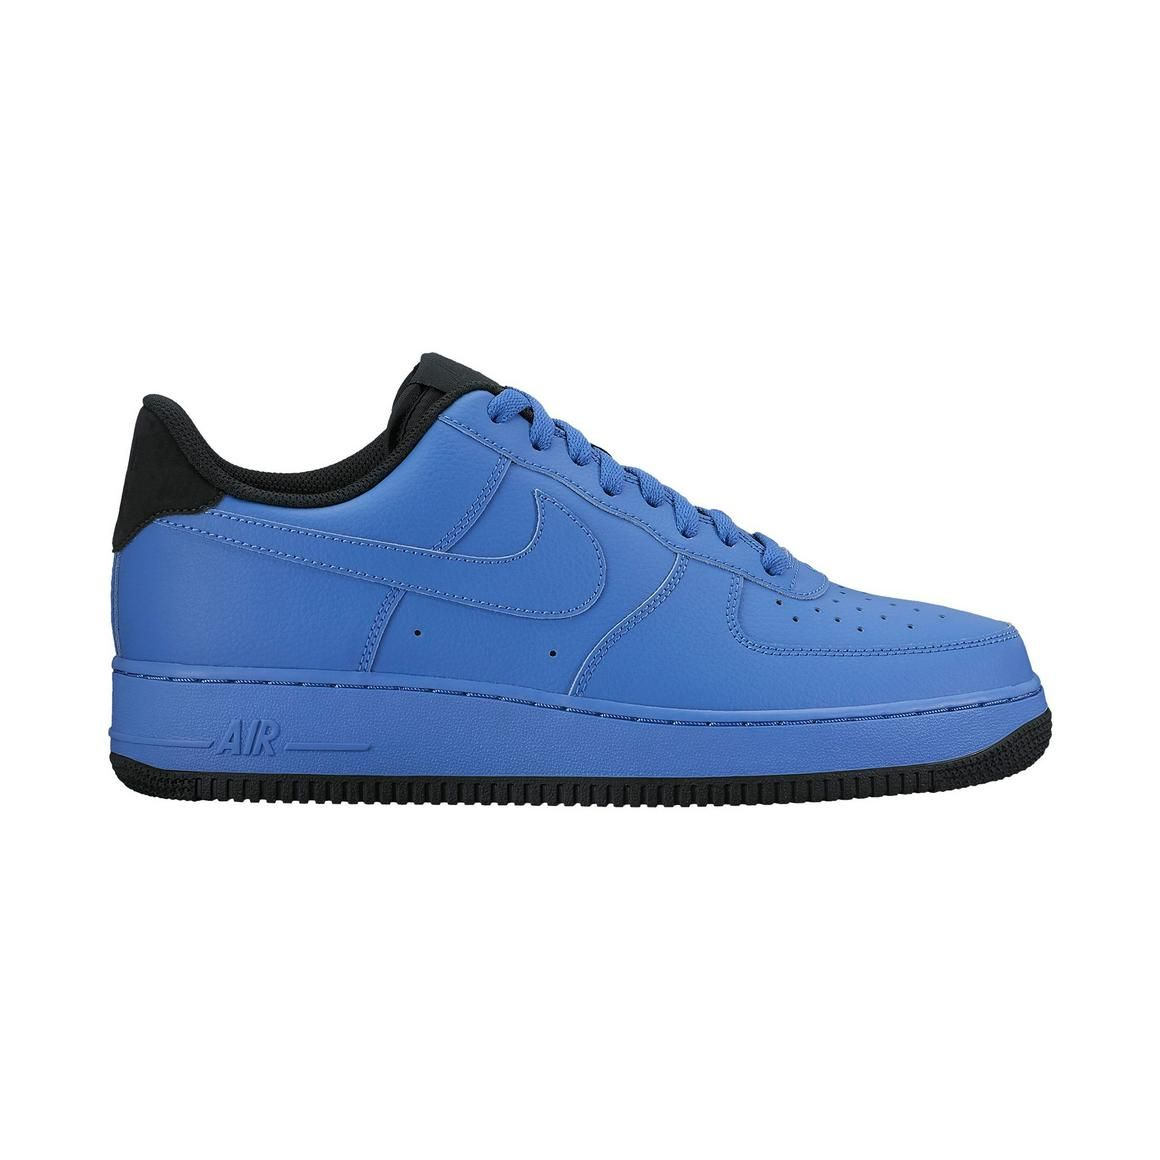 new arrival 225fc d023e Nike Air Force 1 Low Men s Basketball Shoe - Main Container Image 1